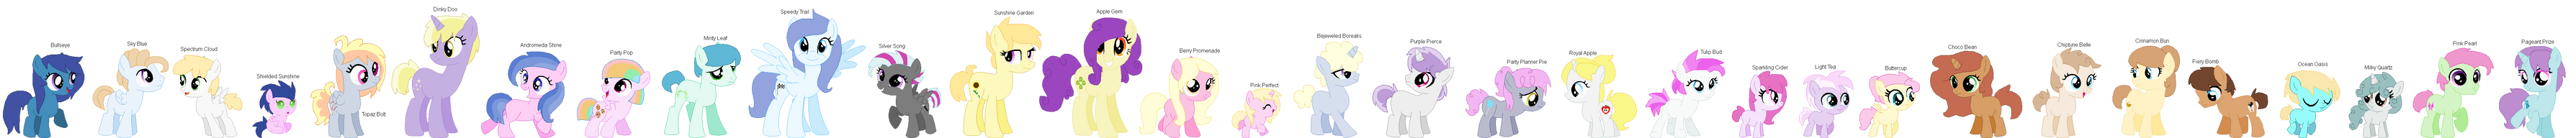 All C Universe foals by Lustmove-The-Hero